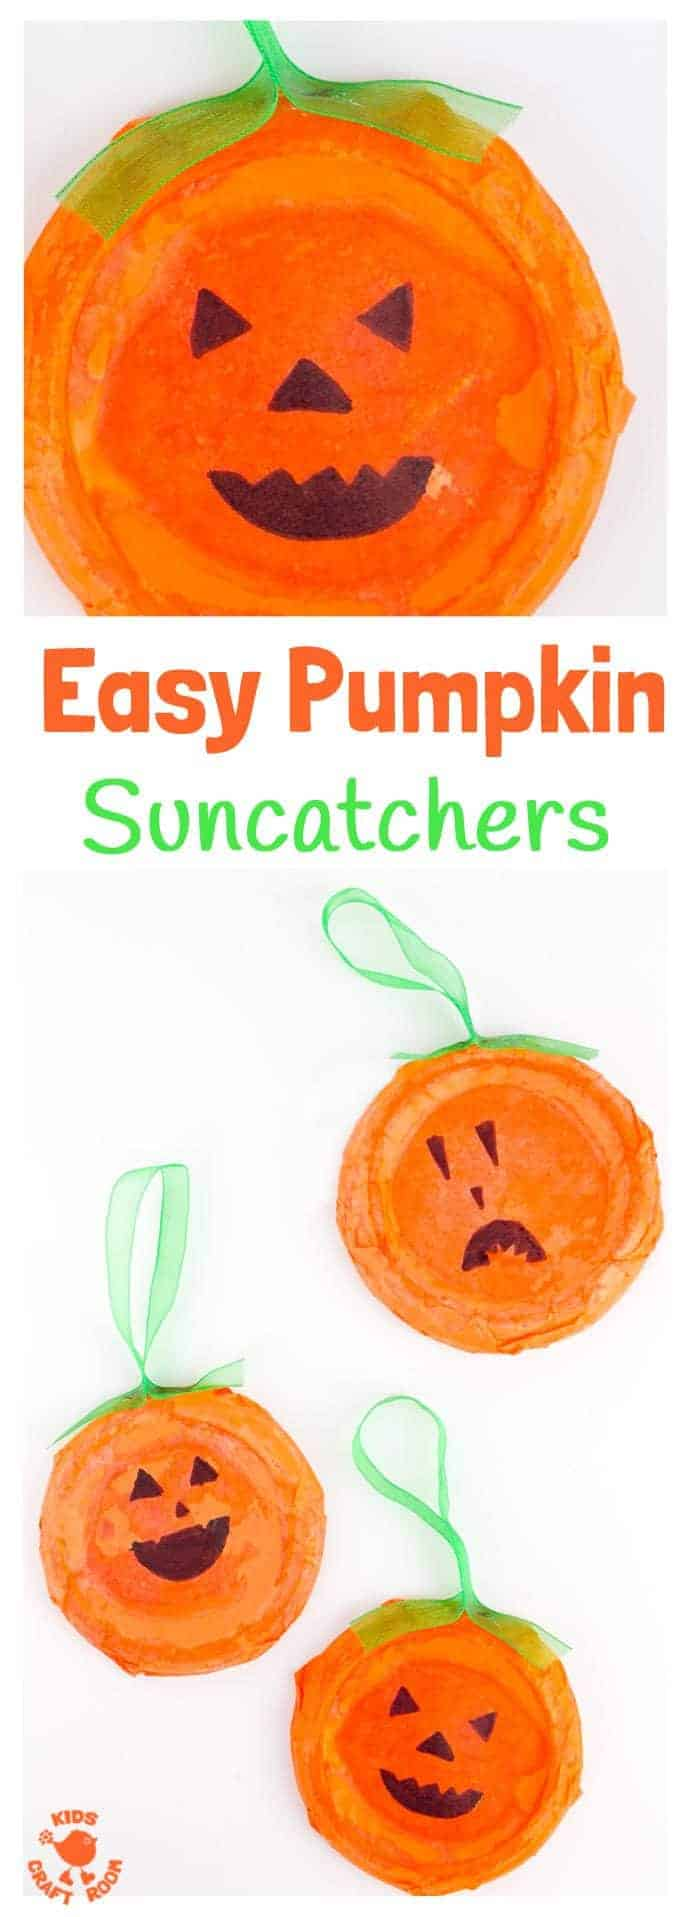 EASY PUMPKIN SUNCATCHERS - This Pumpkin Craft is perfect for toddlers and preschoolers. Kids will love decorating their homemade pumpkins with fun cheeky faces. This characterful pumpkin craft makes great Halloween craft and looks fabulous in the window as Halloween Suncatchers. Such fun!